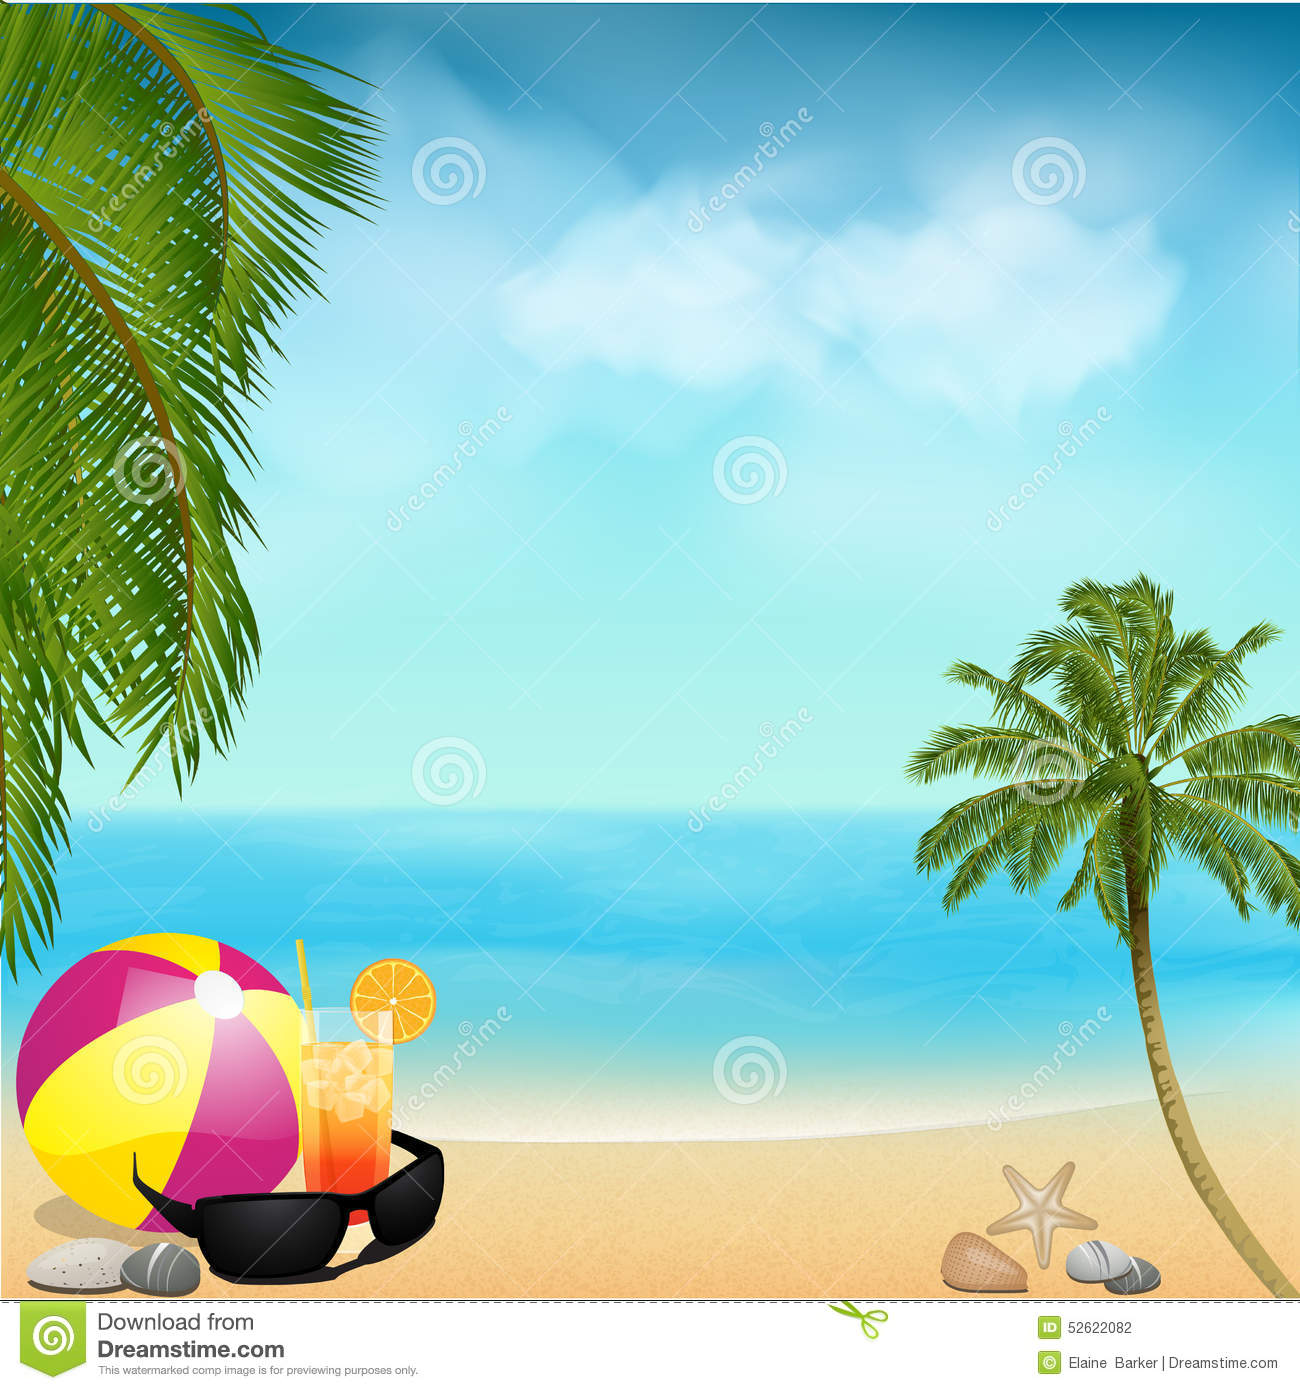 Beach Ball Background Image collections - Wallpaper And